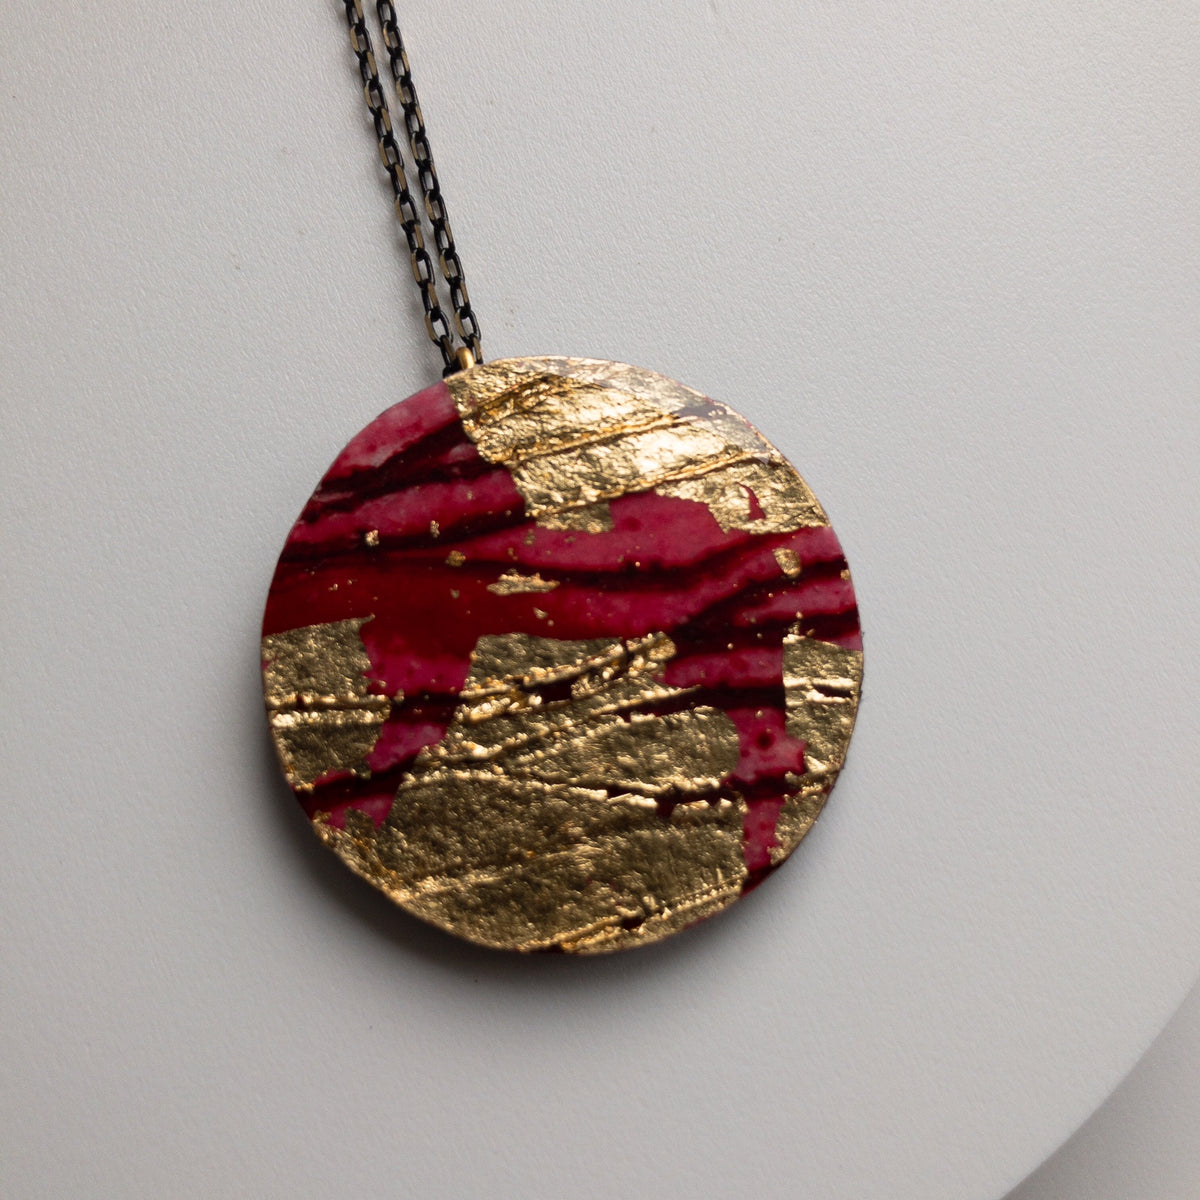 Ró sgraffito textile necklace in gold/red